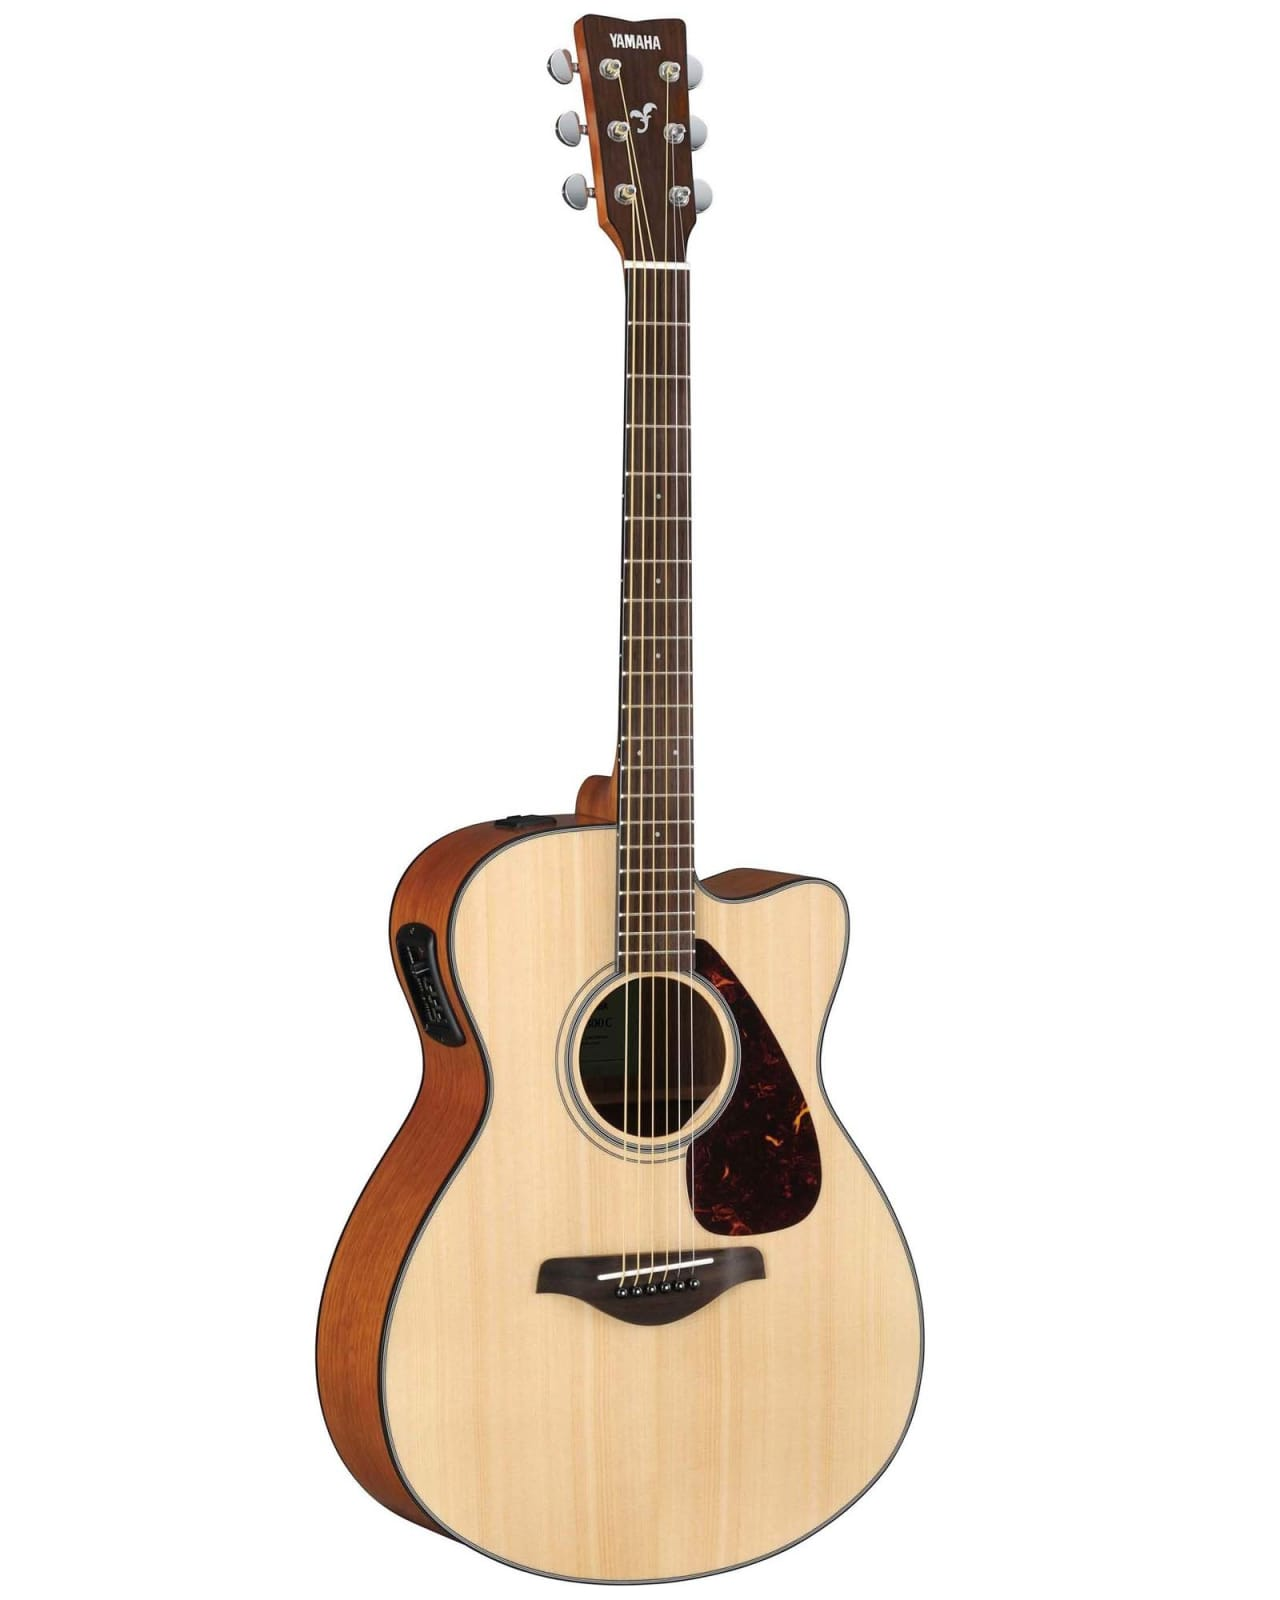 Brand new yamaha fsx800c small body acoustic electric for Yamaha guitar brands